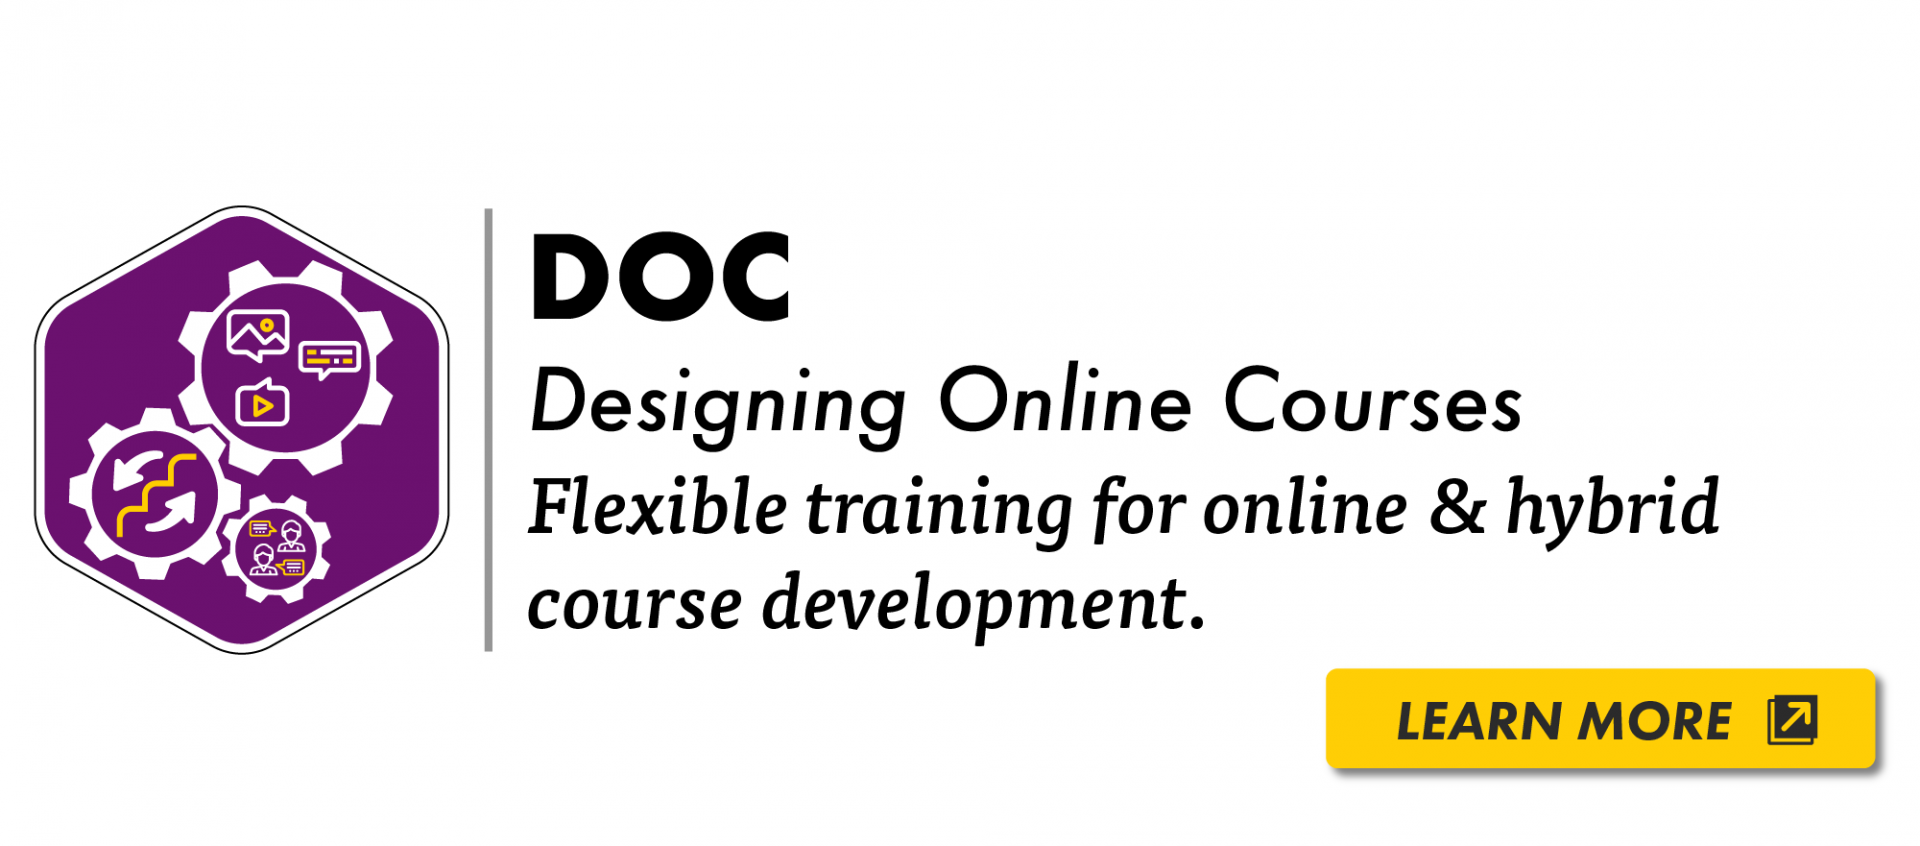 DOC Designing Online Courses learn more